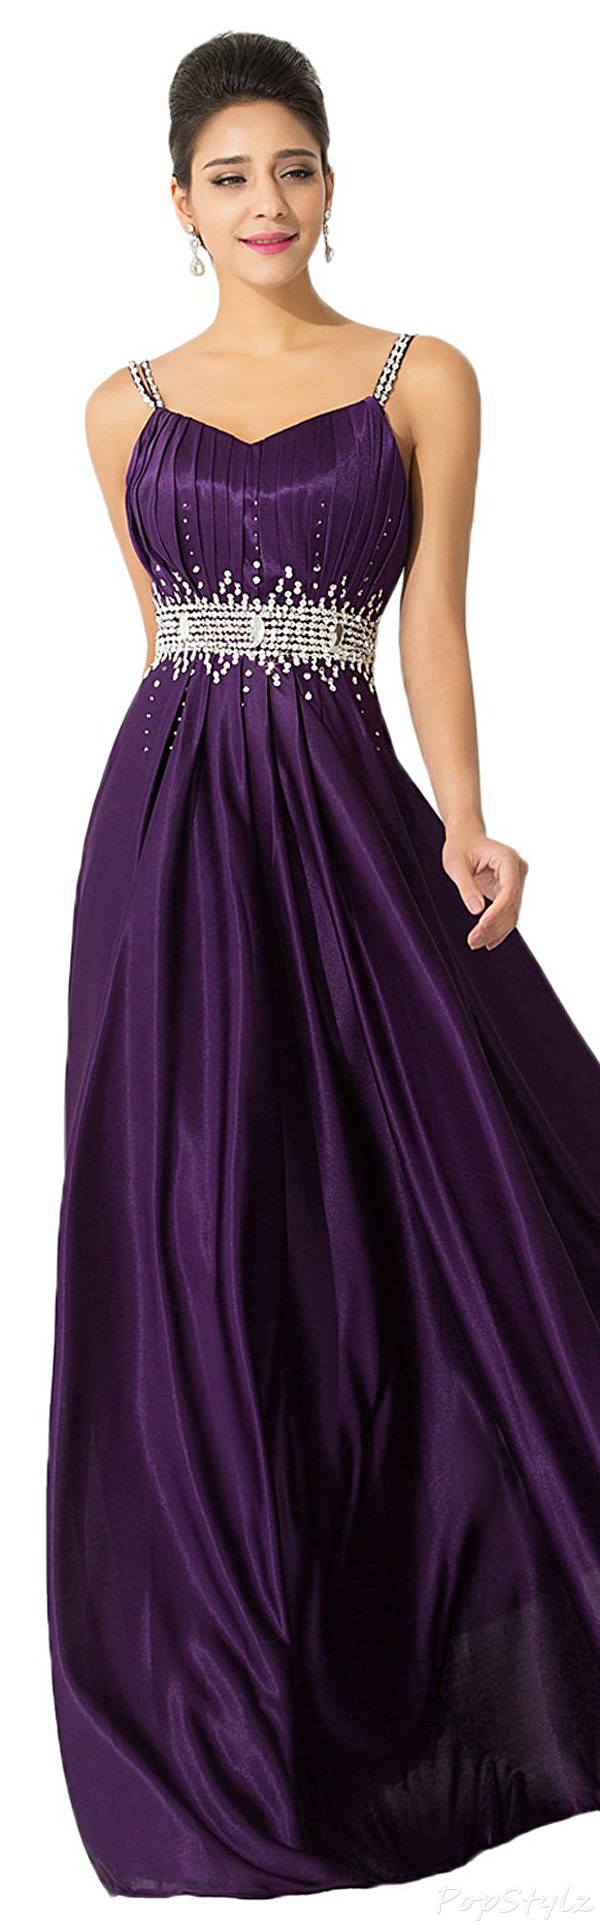 Sunvary Spaghetti Straps Long Formal Gown